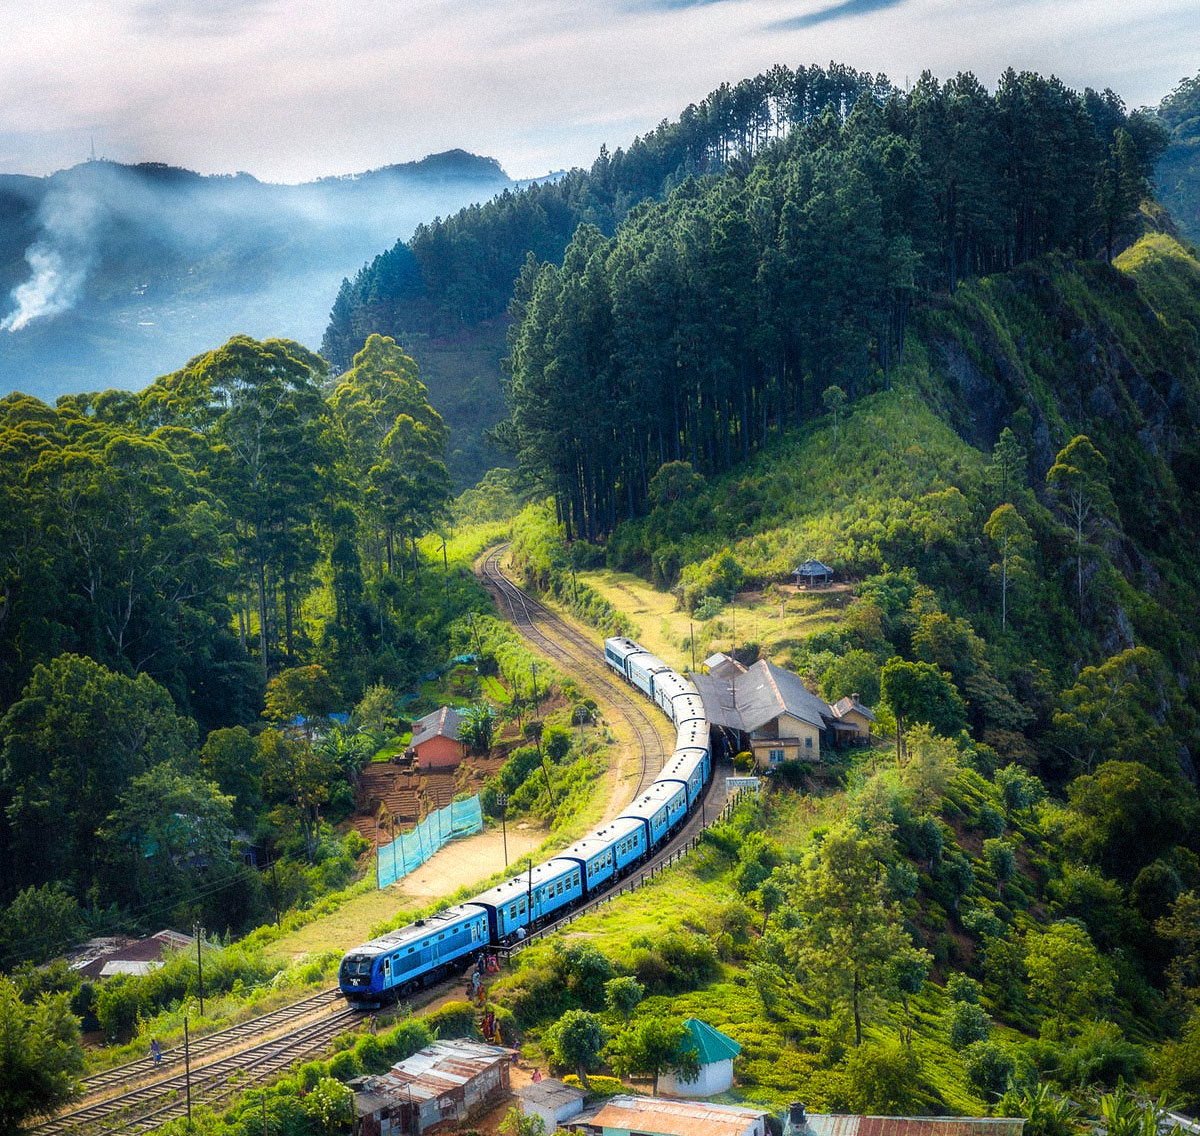 Photo of a train in misty mountains with forest in the background. Photo by: SenuScape / Pexels